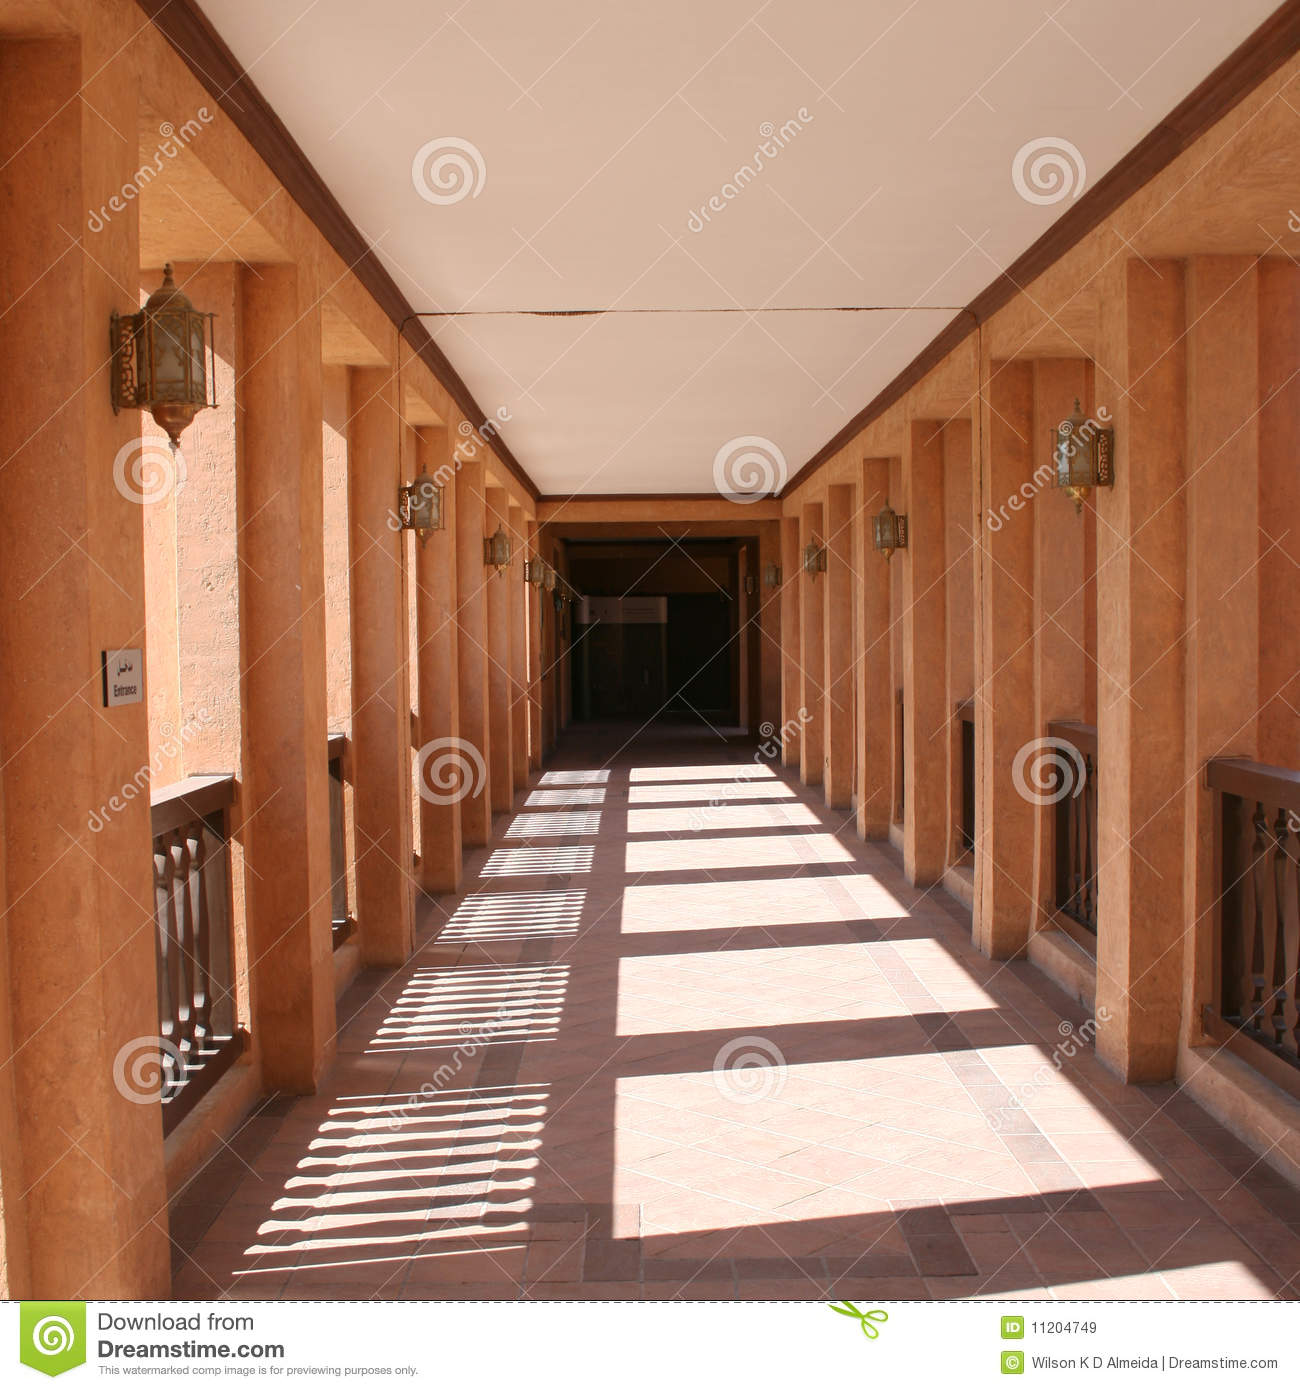 Download The Corridor Of Al Ain National Museum Stock Image - Image of attraction, round: 11204749